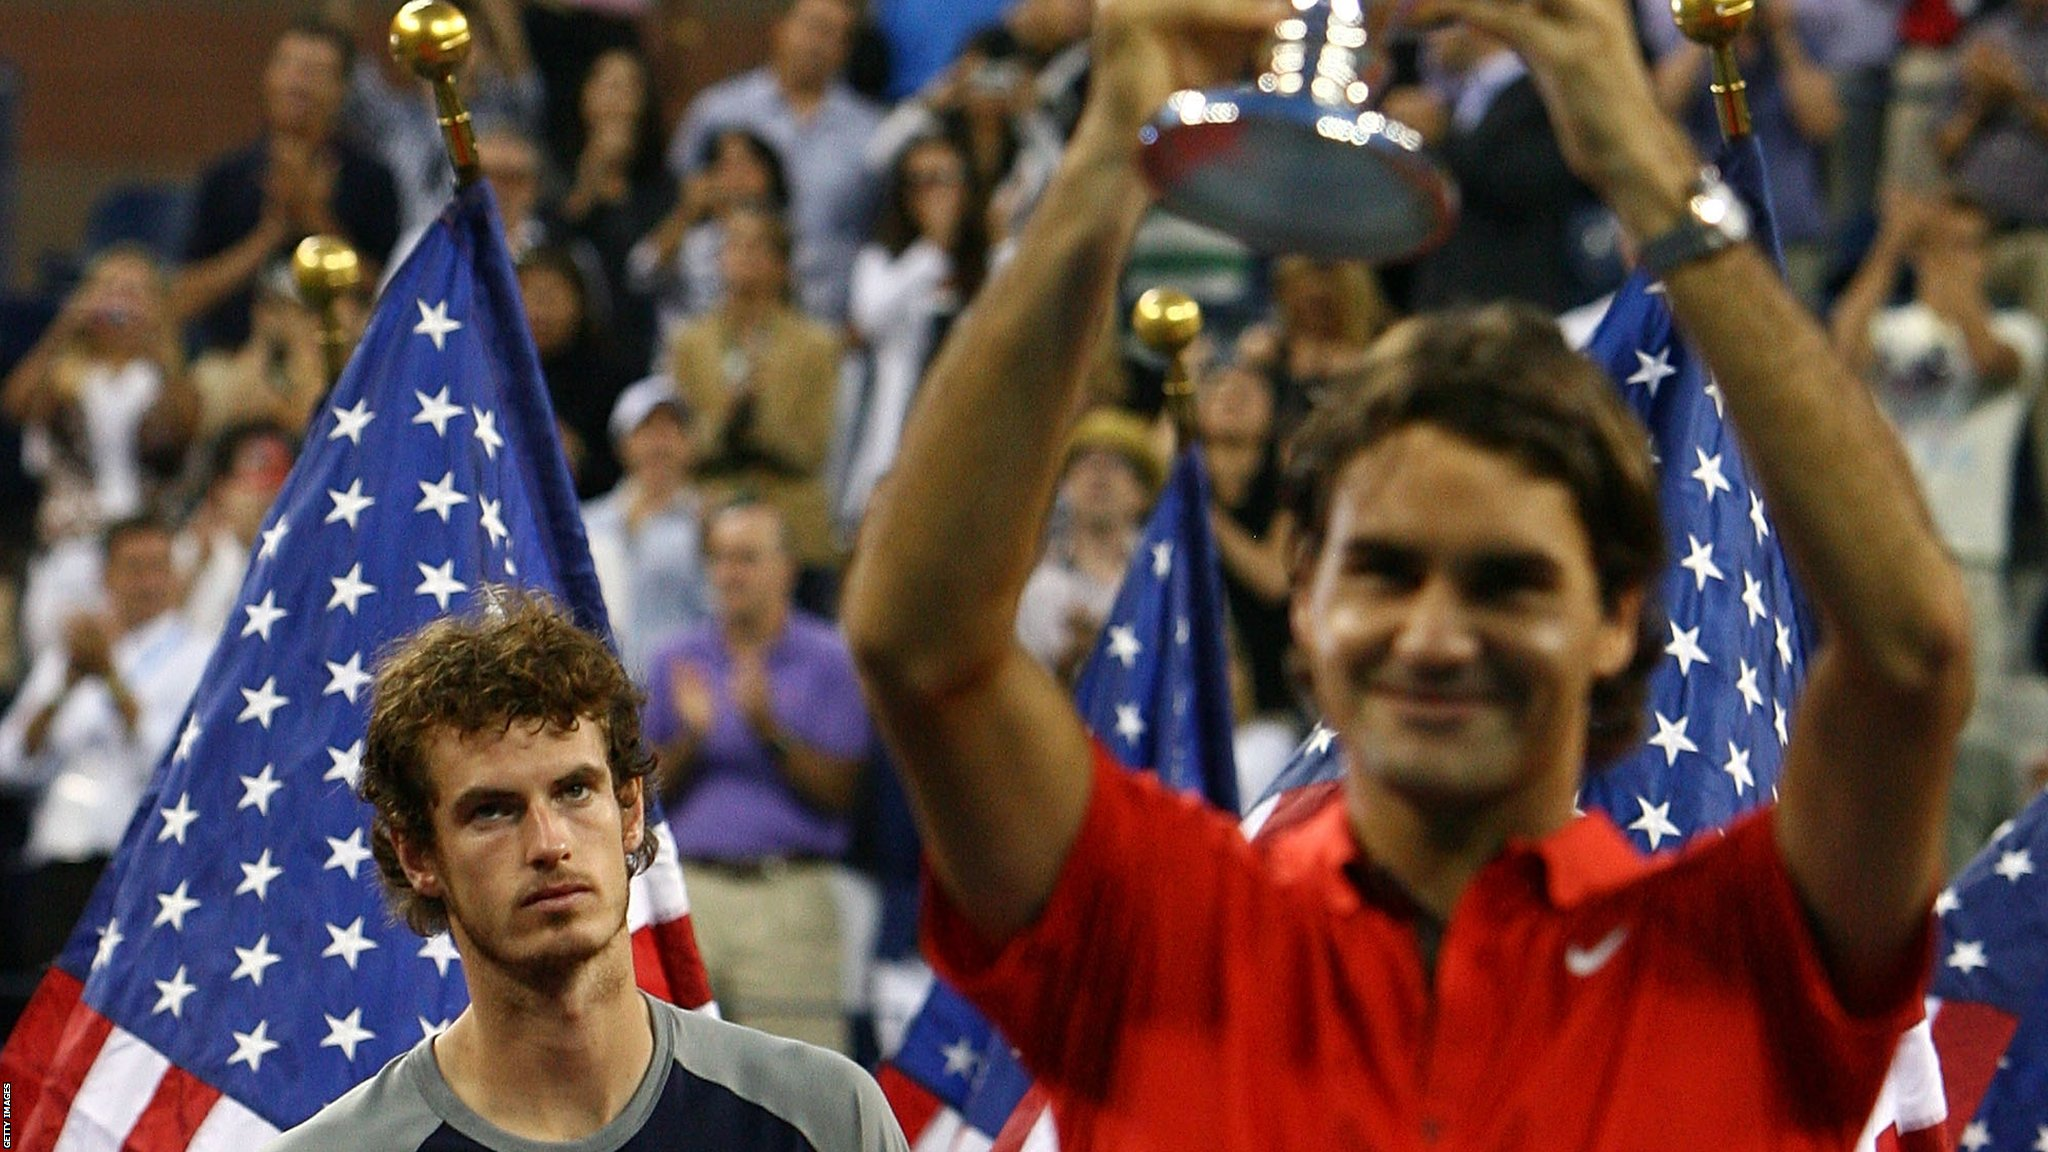 Andy Murray loses to Roger Federer at the US Open final in 2008